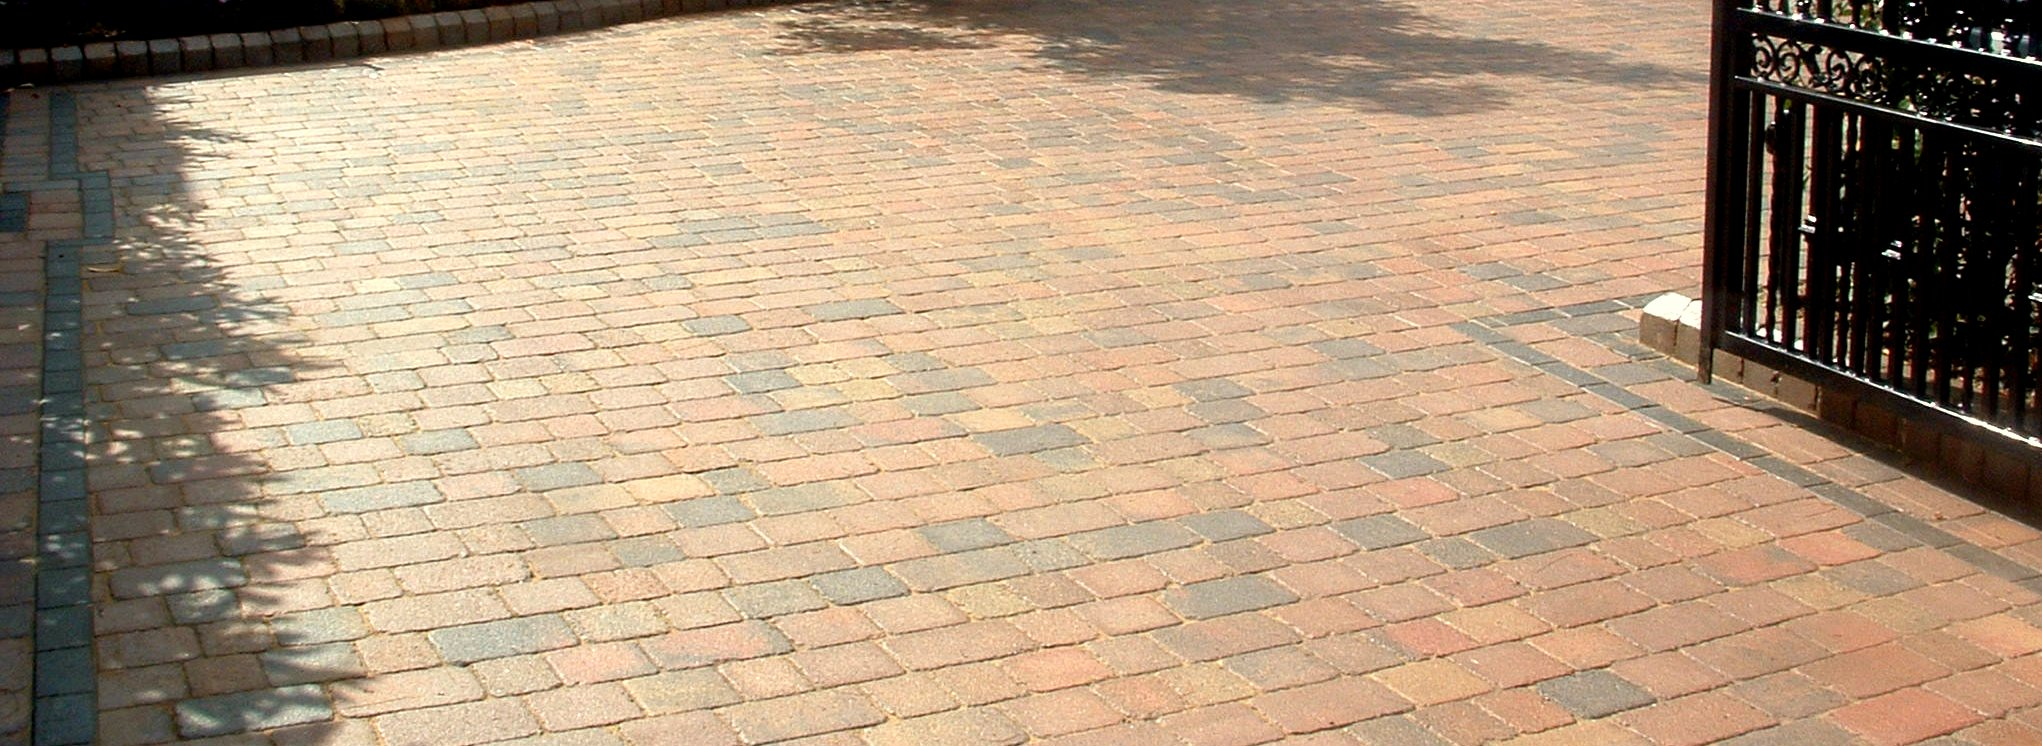 Premium block paving driveway by Armstrong's Roads & Driveways Darlington